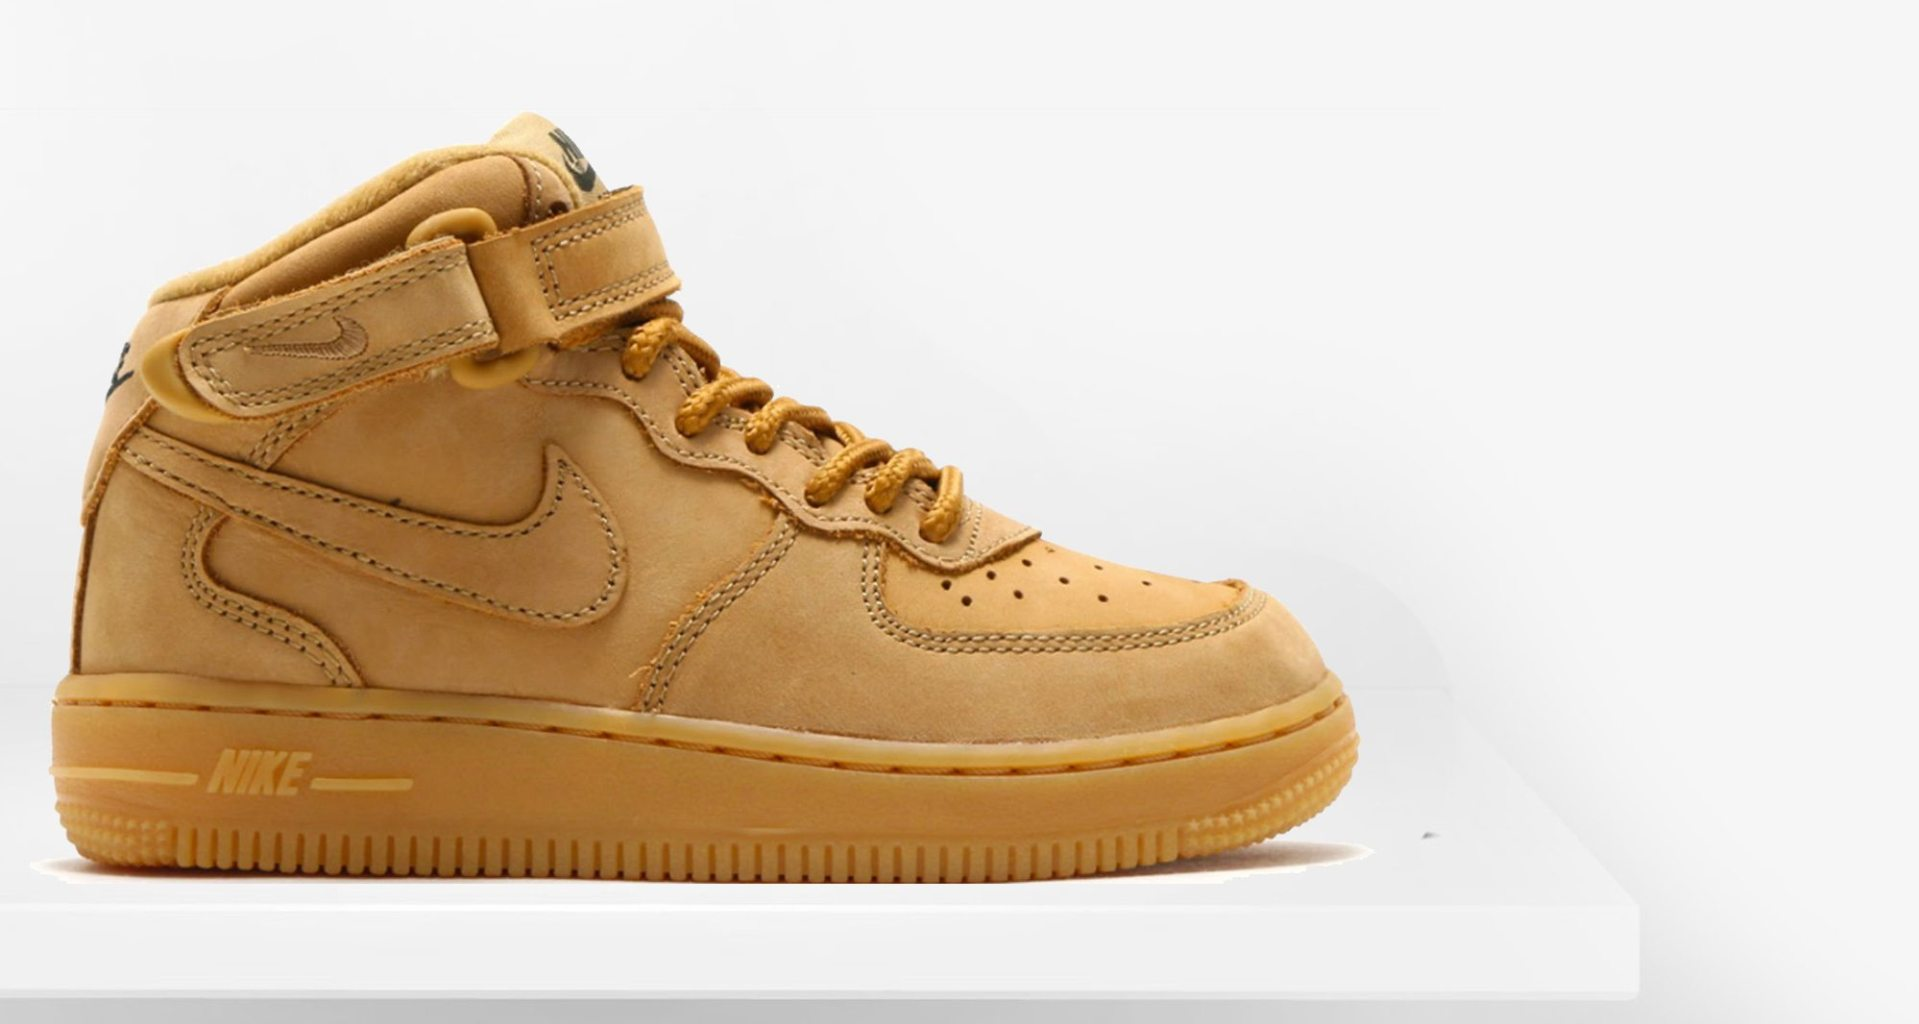 This Nike Air Force 1 Mid PS